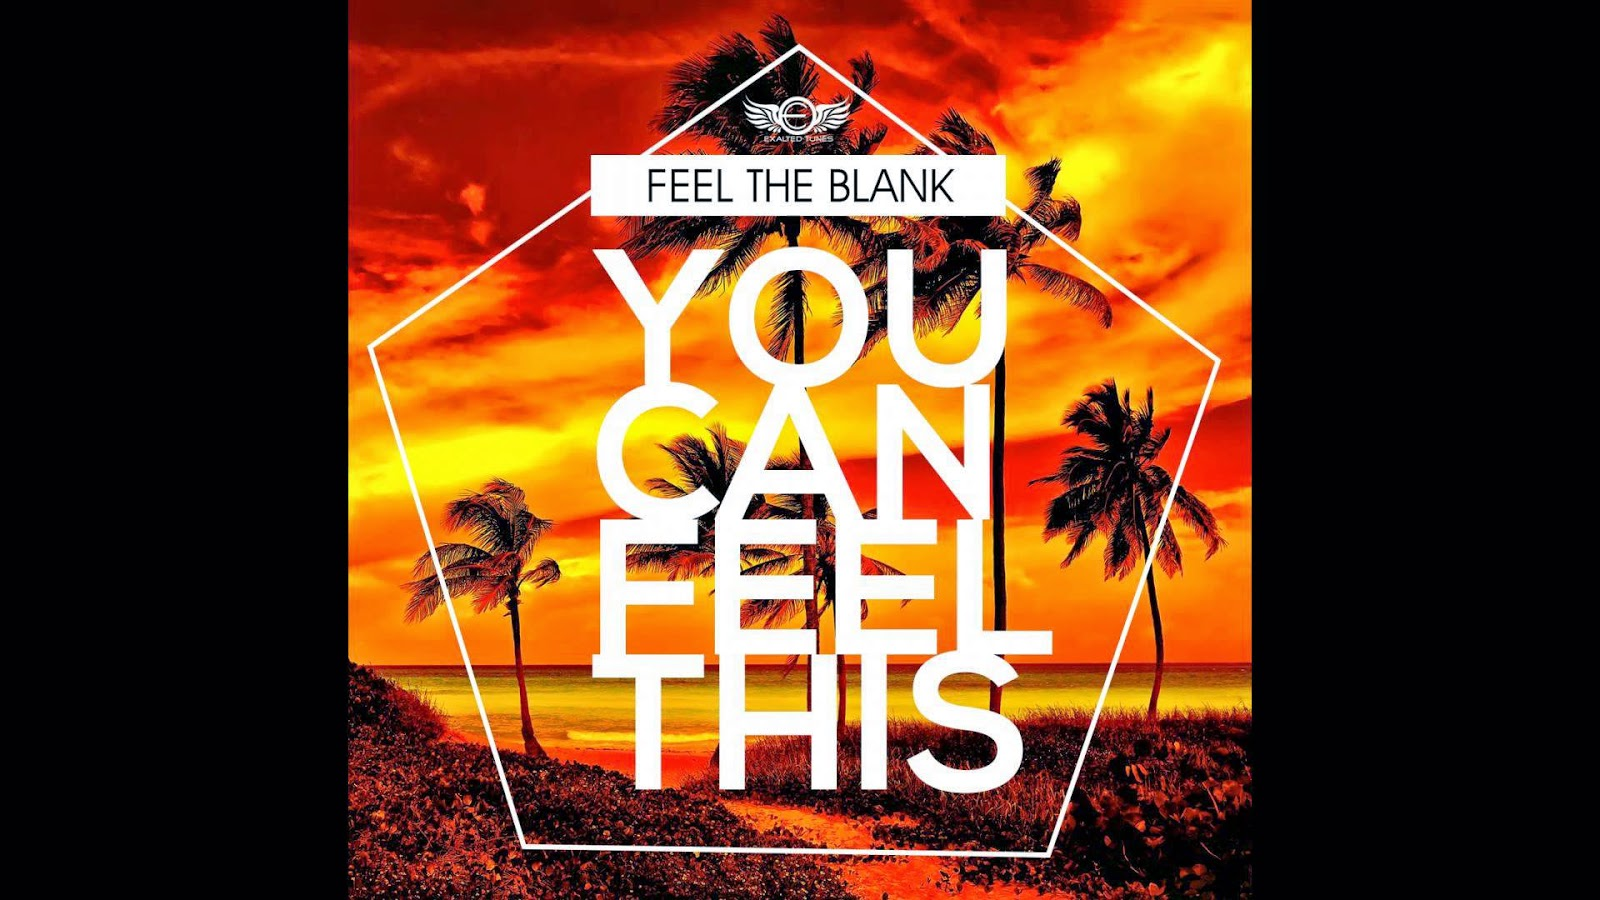 Feel The Blank - You Can Feel This (Original Mix)